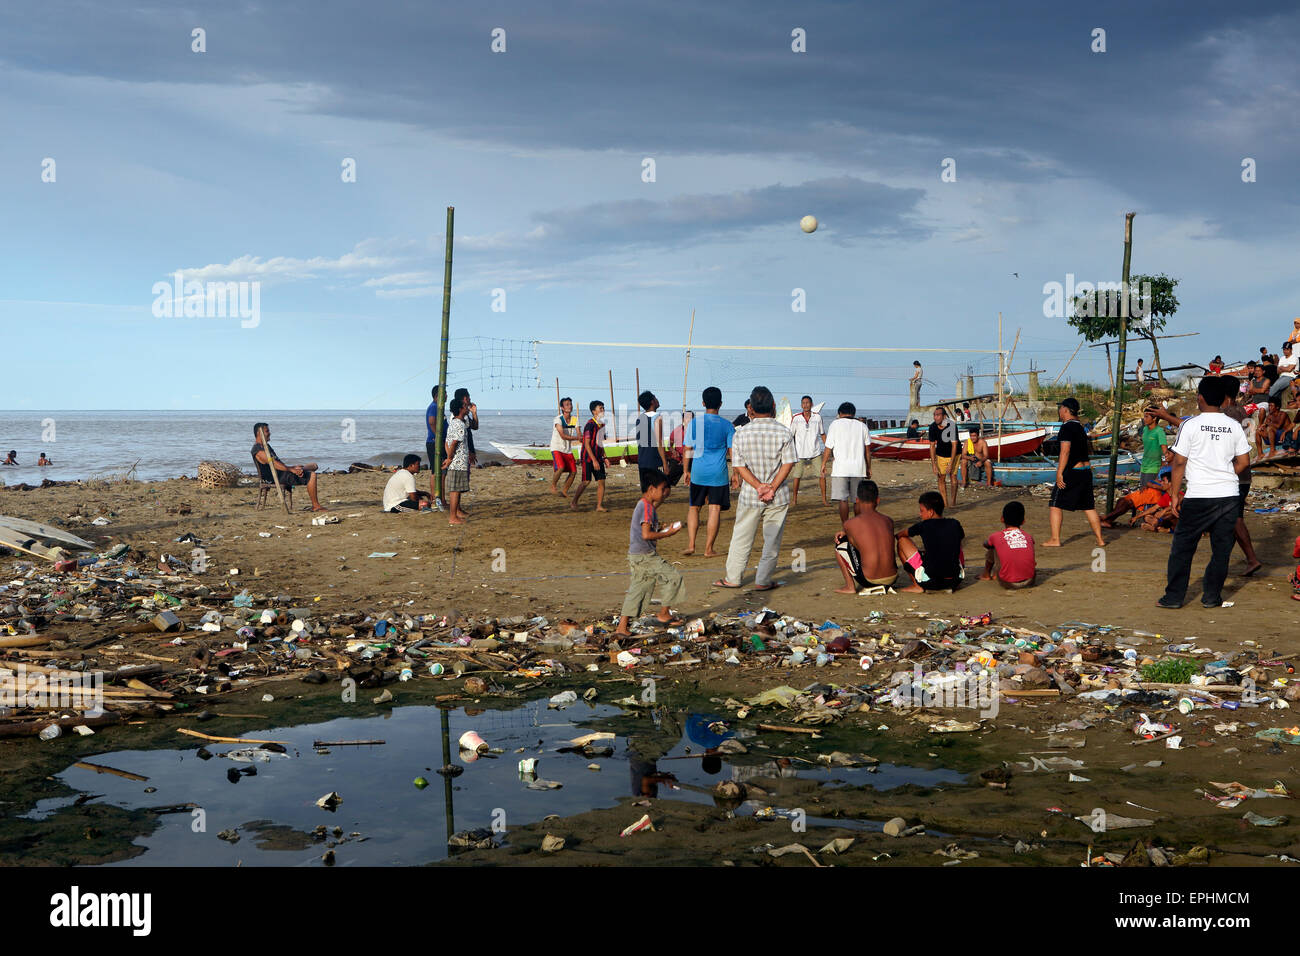 Men playing a game of volleyball on beach covered in plastic trash and other garbage in Sumatra, Indonesia - Stock Image